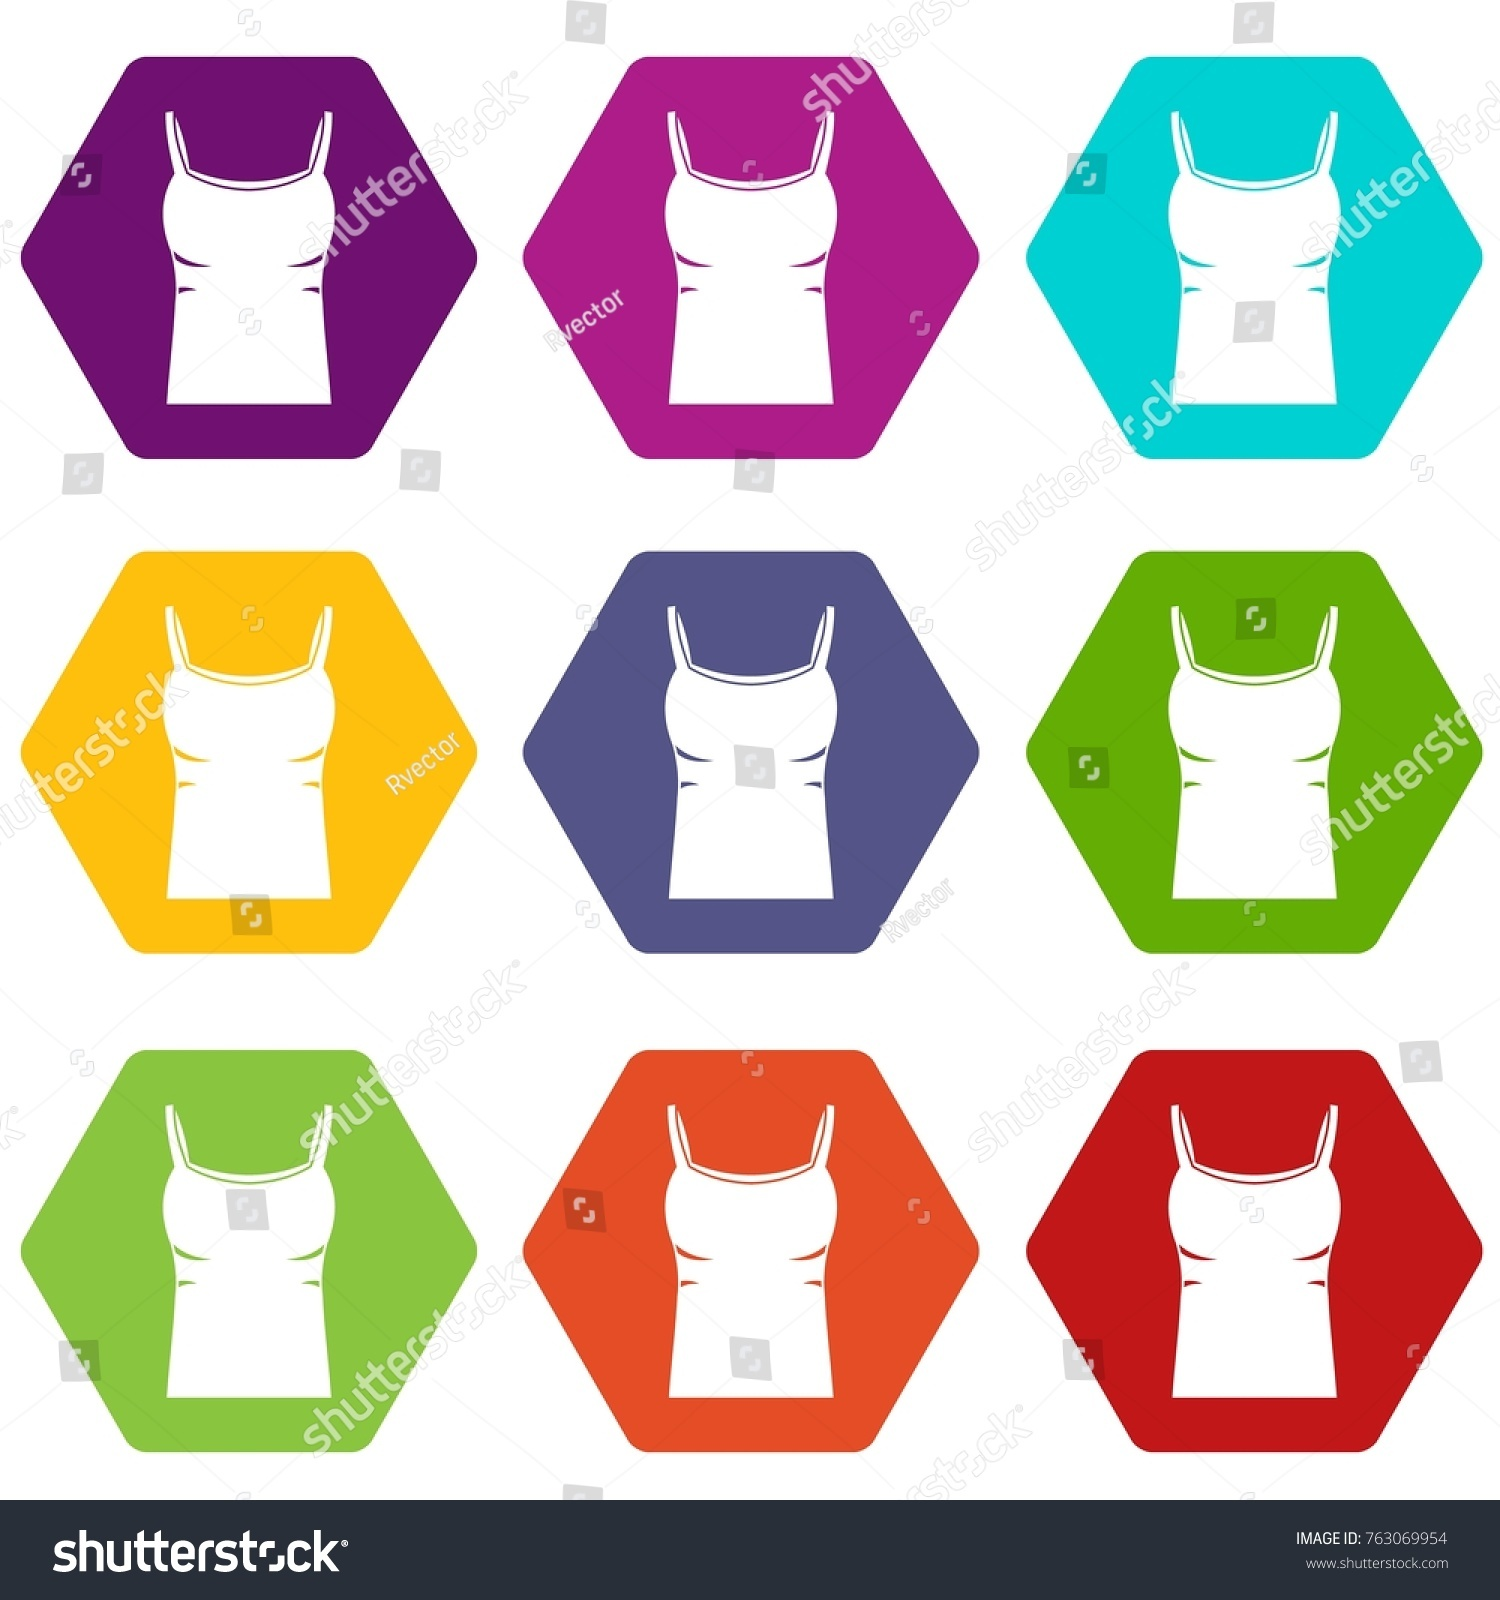 8e17f35d076a4 Blank women tank top icon set many color hexahedron isolated on white  vector illustration